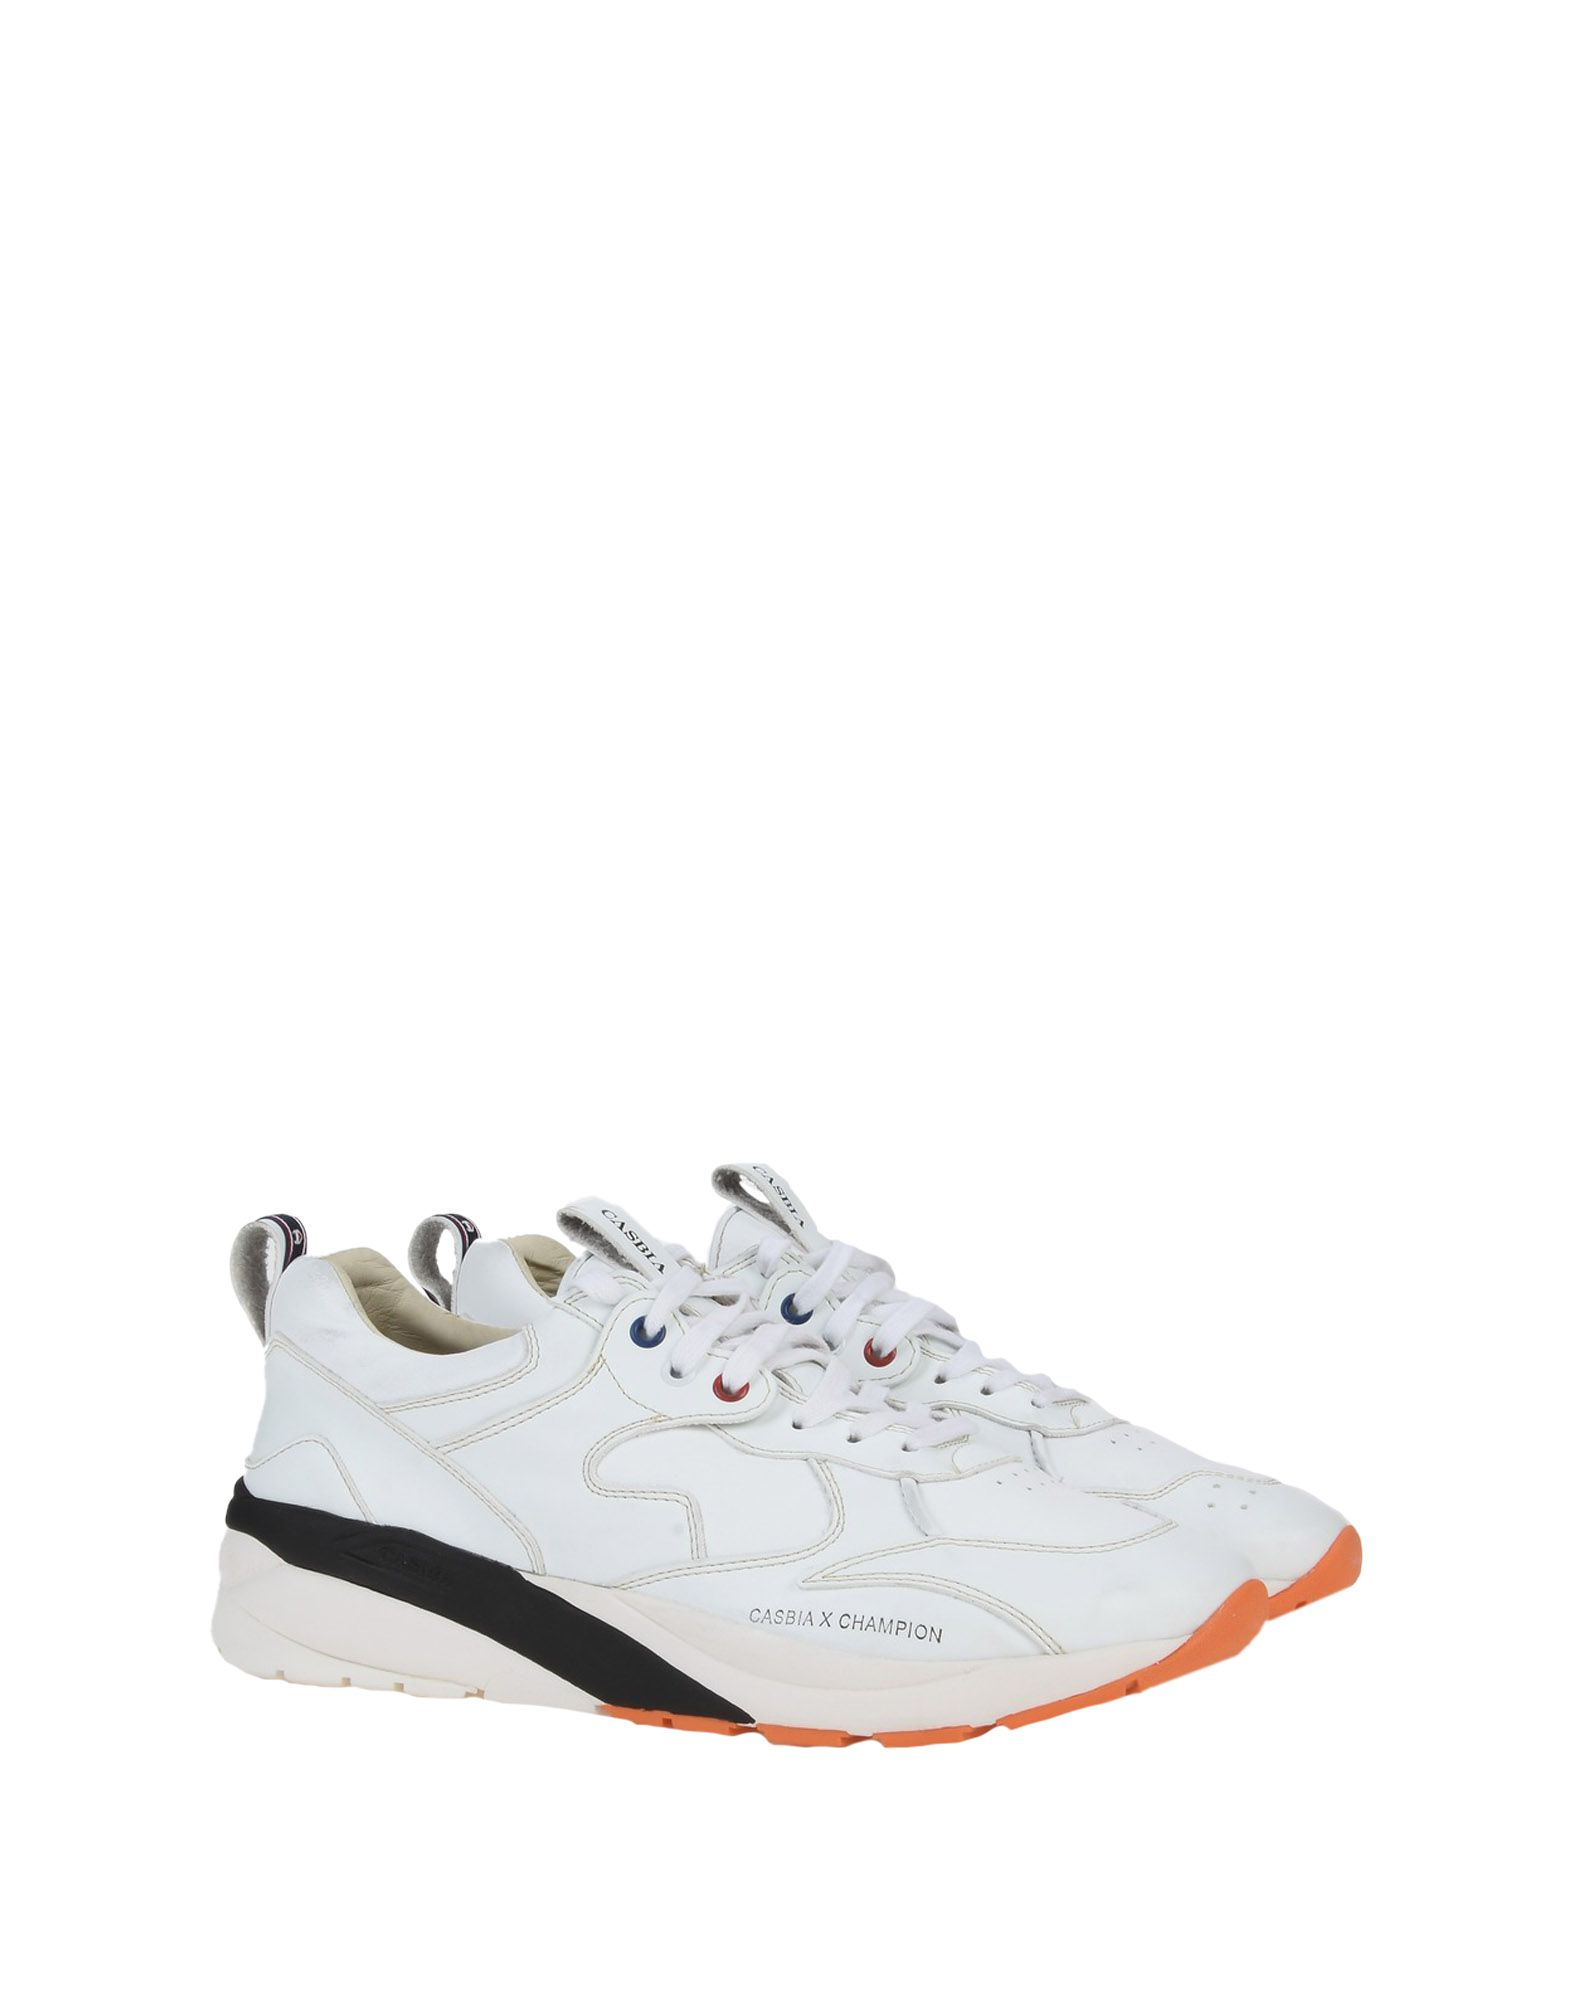 Sneakers Casbia X Champion Veloce Atl - Uomo - 11470860NT